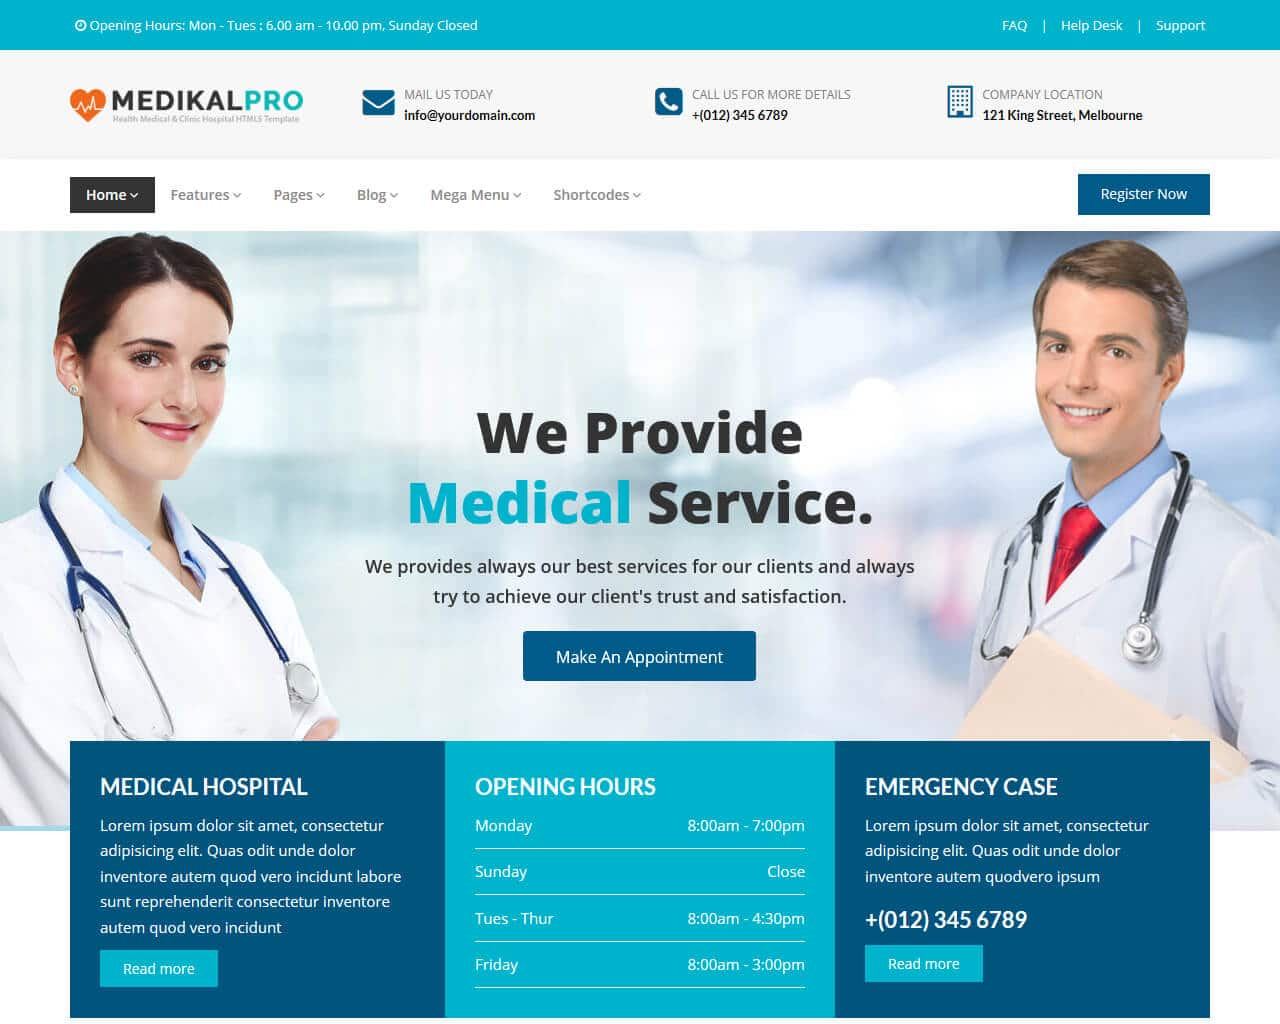 Medical Pro Website Template